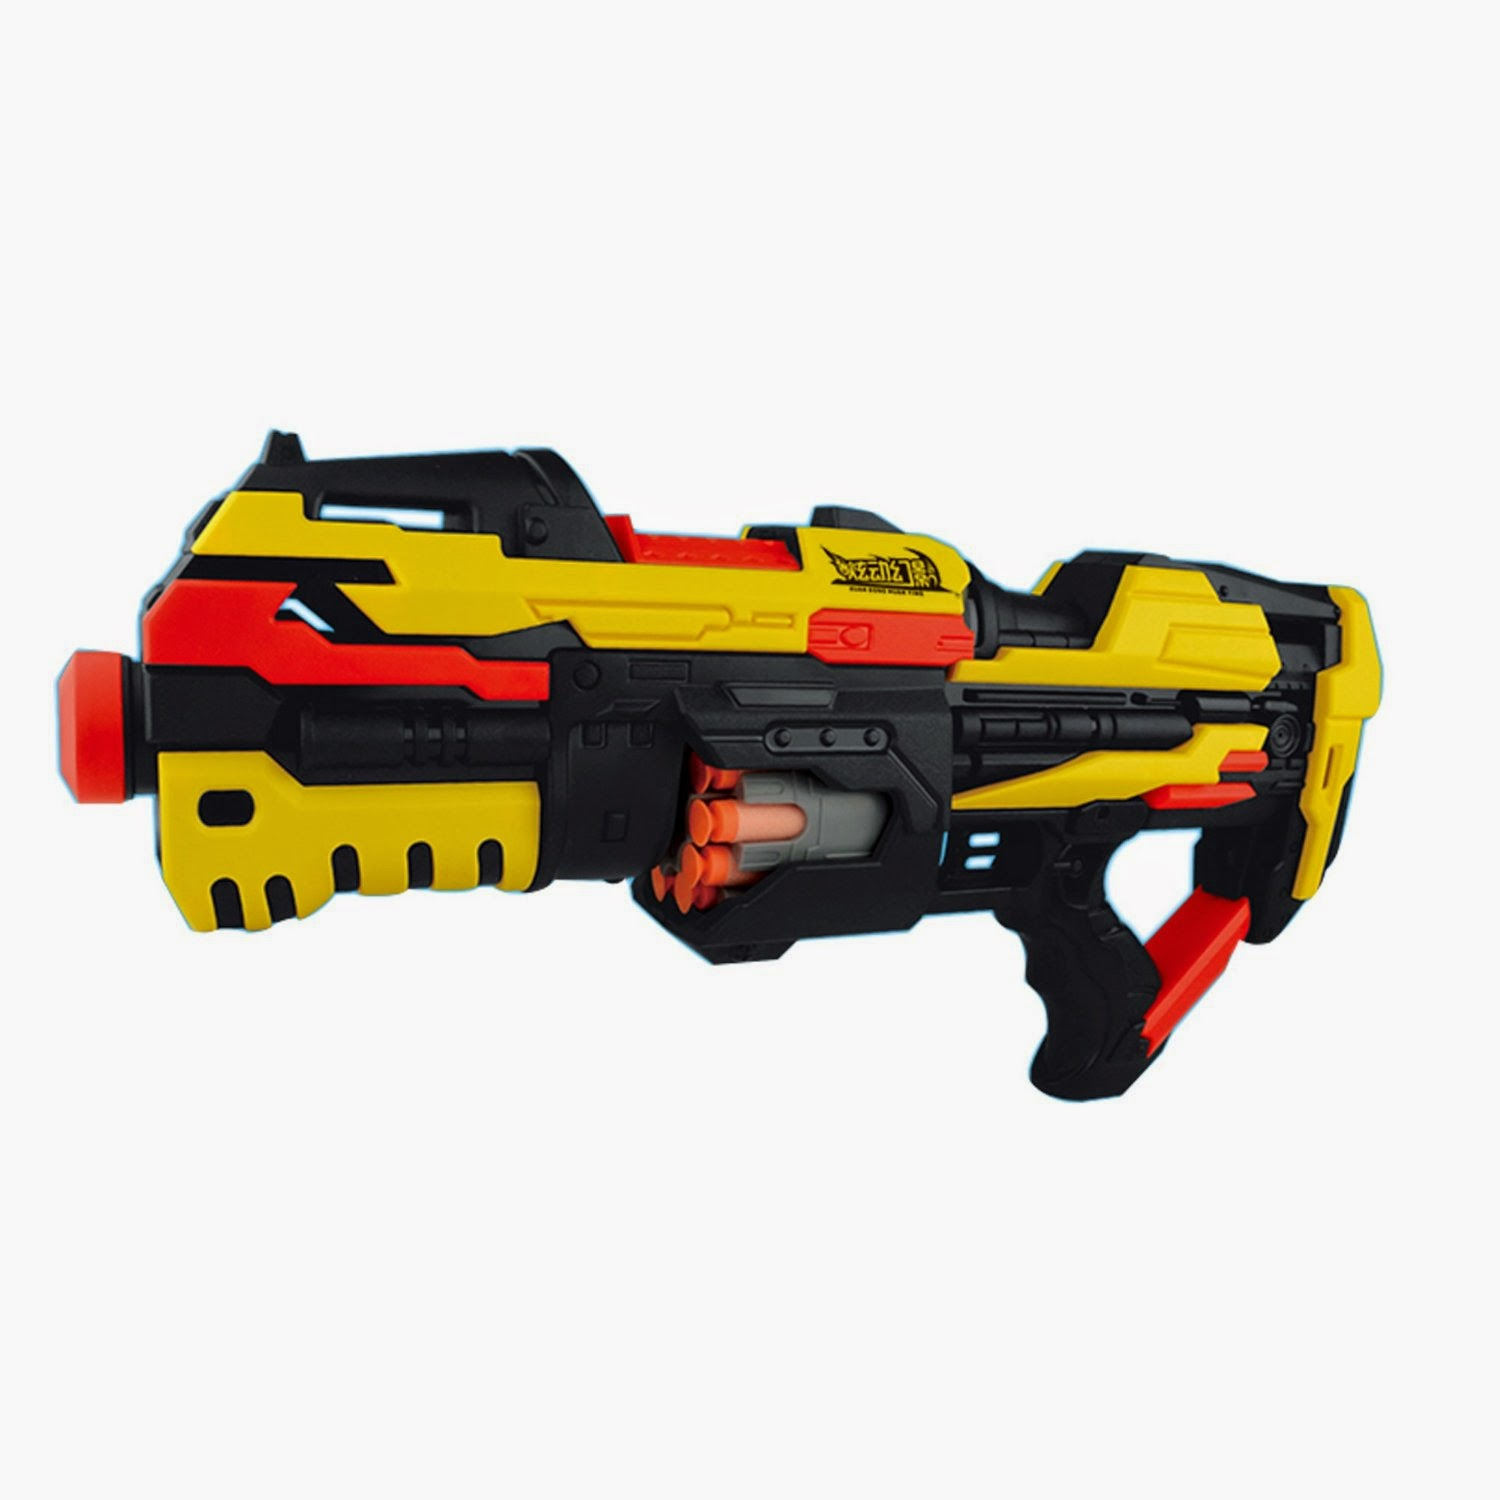 Sometime in April I ll be ting a package with the following Chinese knockoff blasters